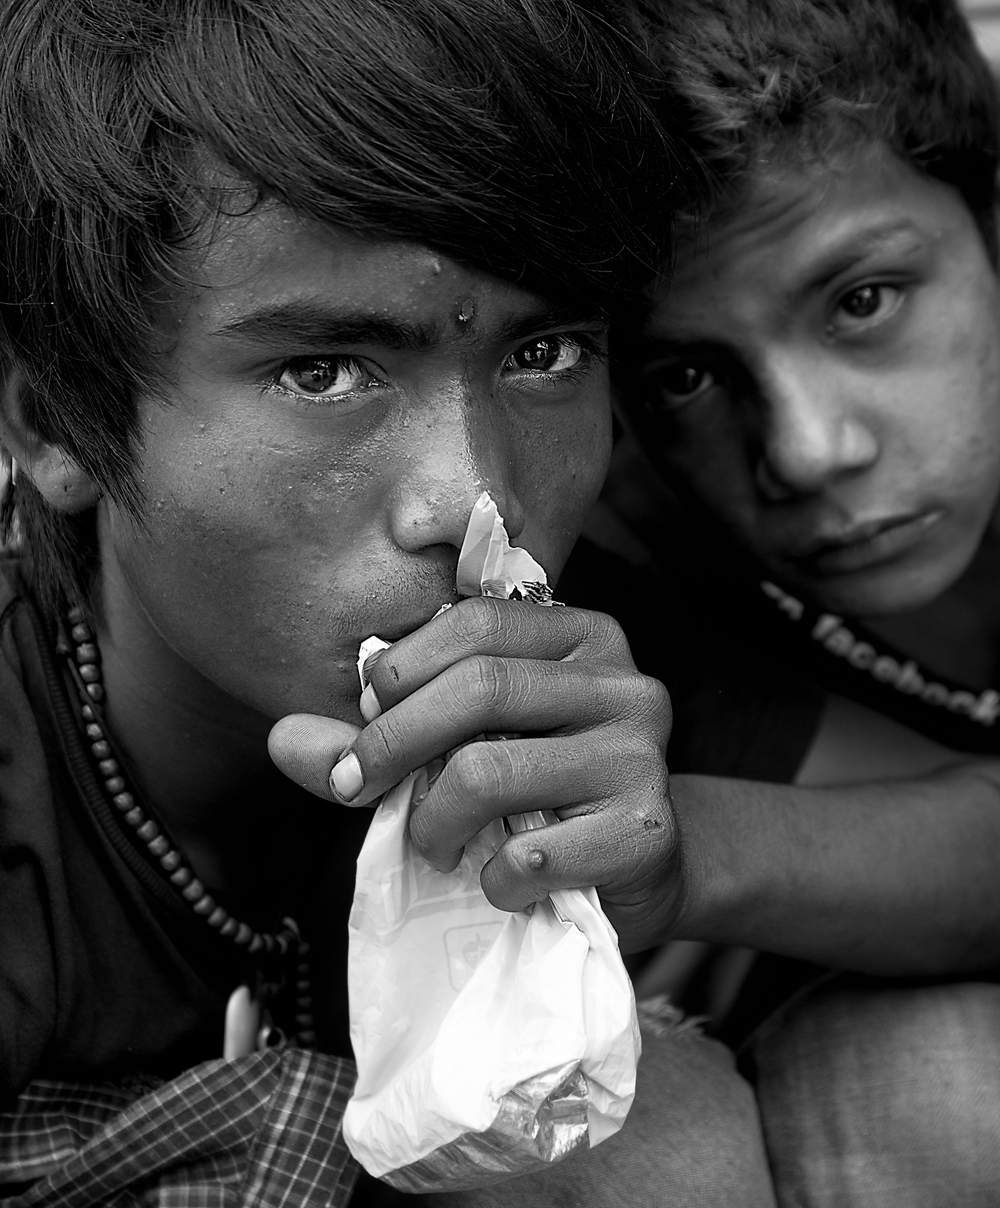 Patan Boy sniffs as the effects take hold of Ramoosh.